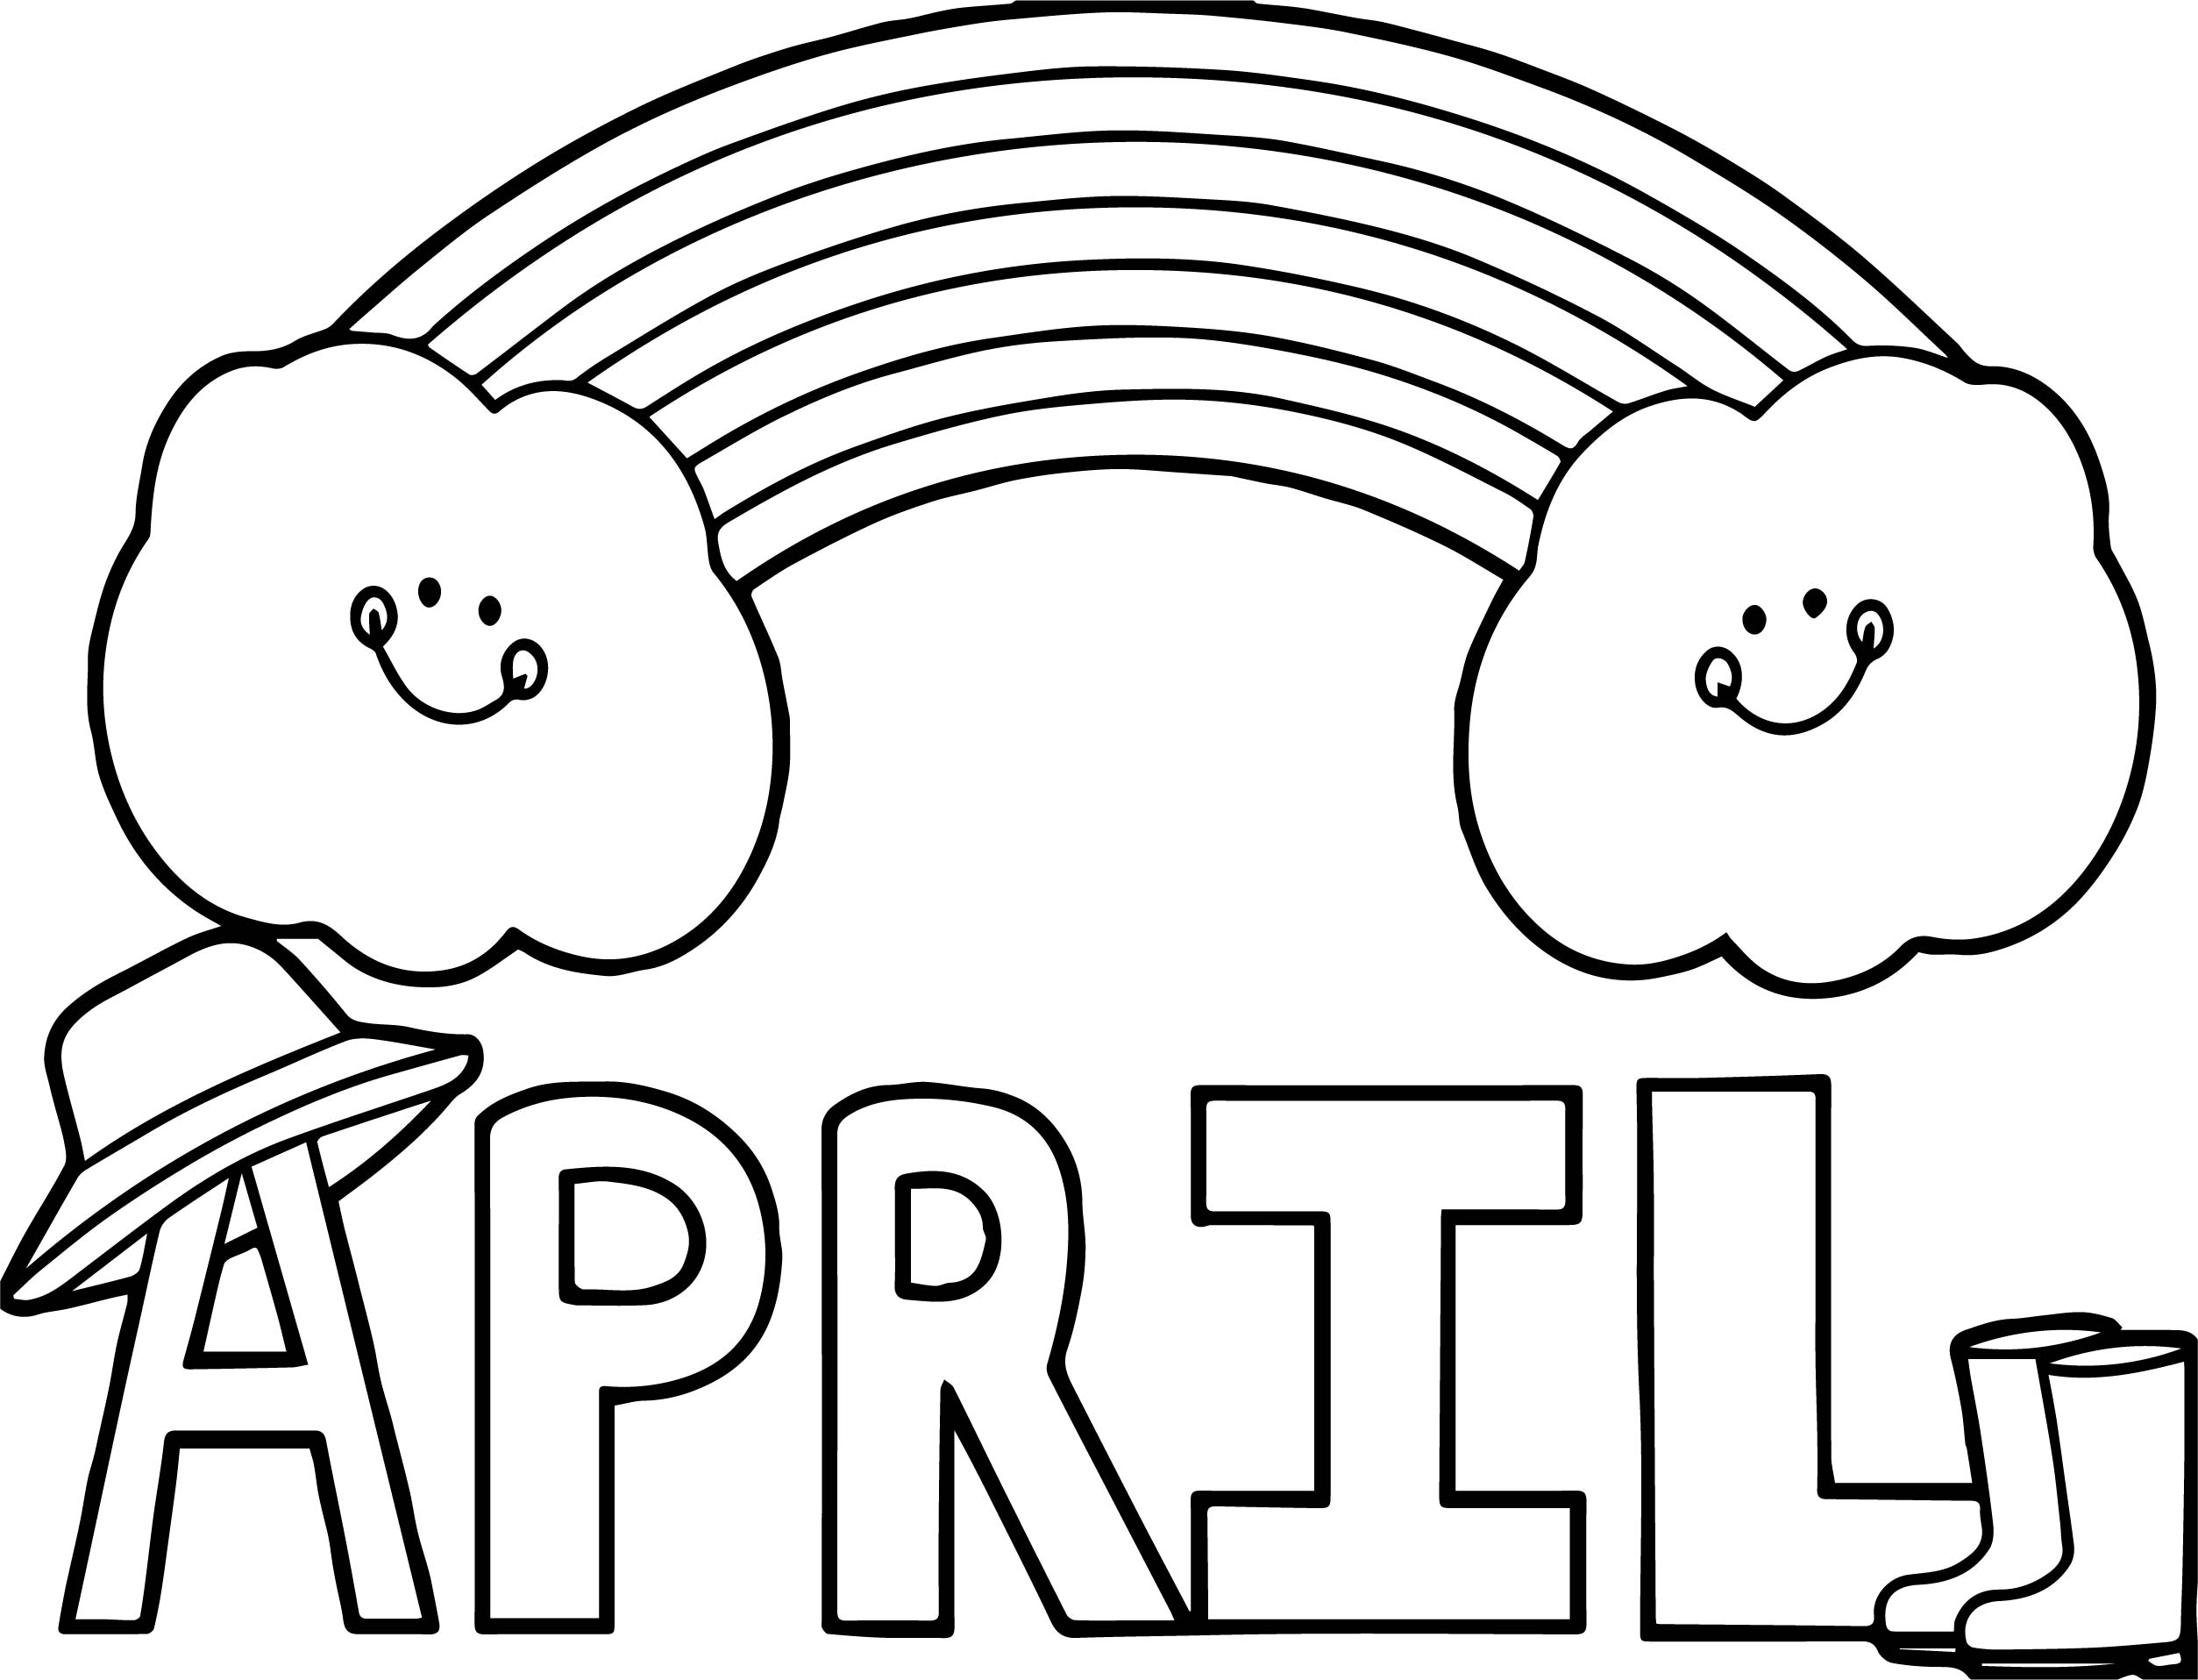 April Shower Text And Cloud Coloring Page